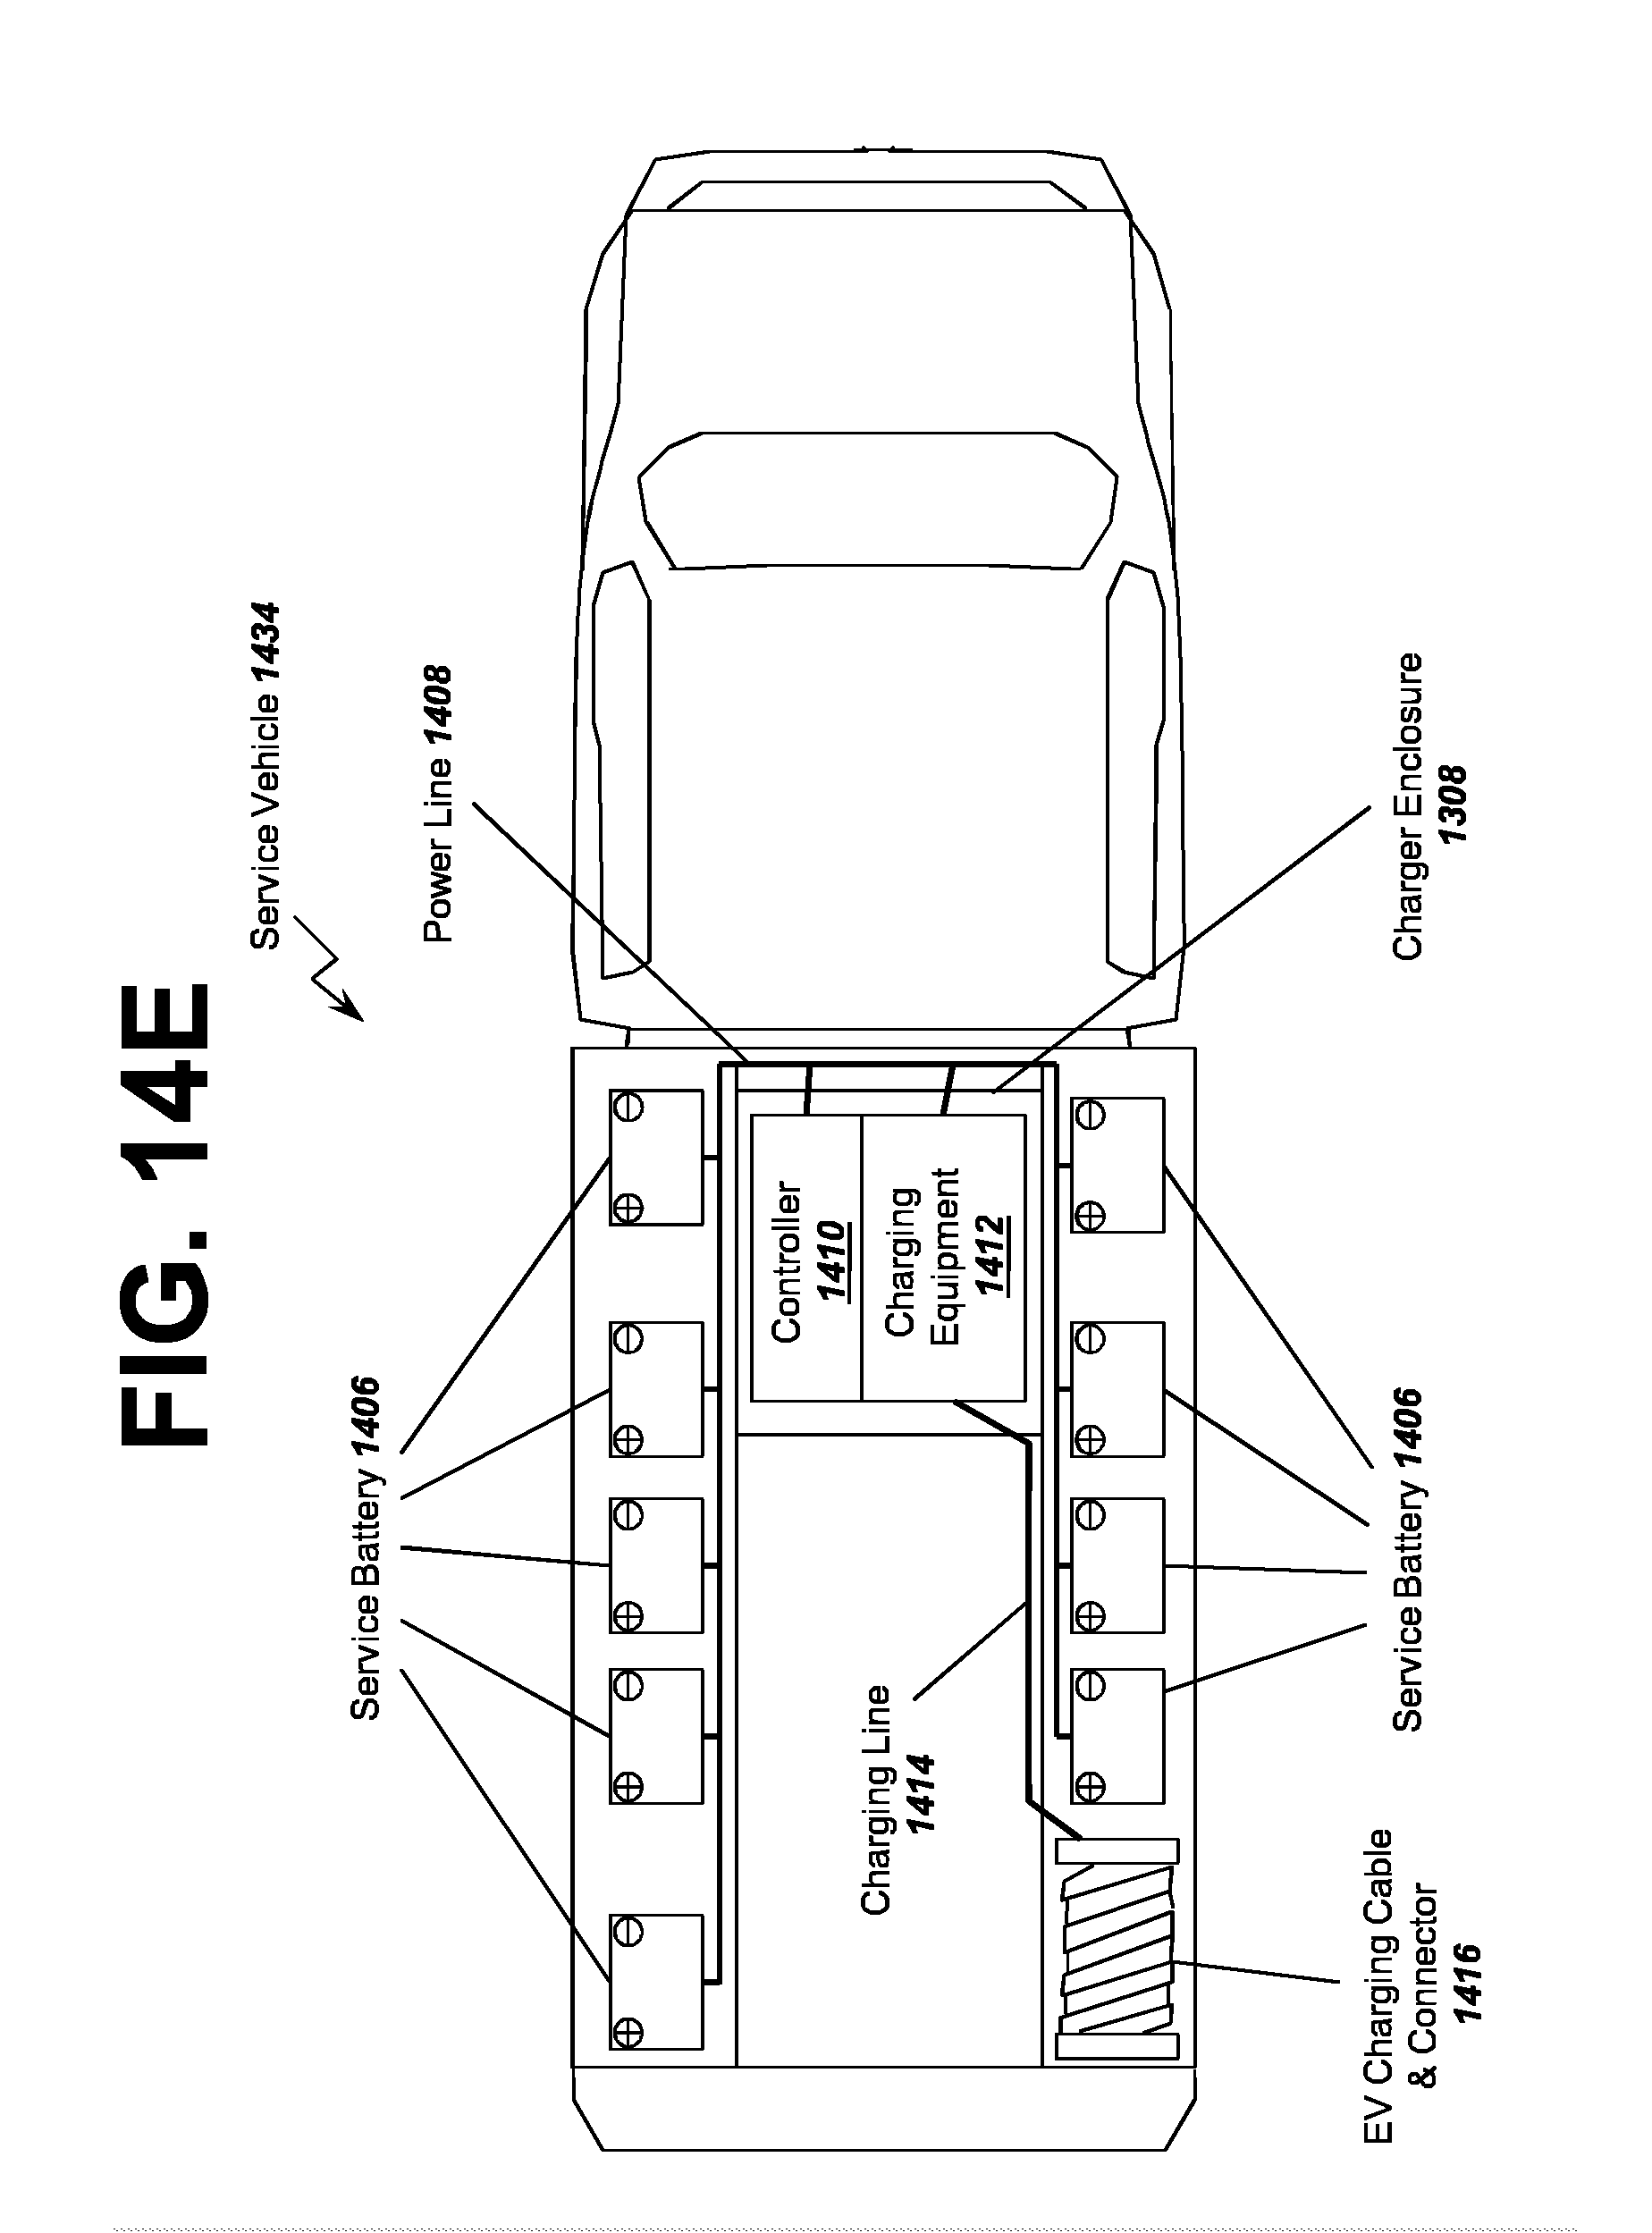 fig 1434 two typical alternator wiring circuits today wiring diagrampatent us20120303259 providing roadside charging services google fig 1434 two typical alternator wiring circuits